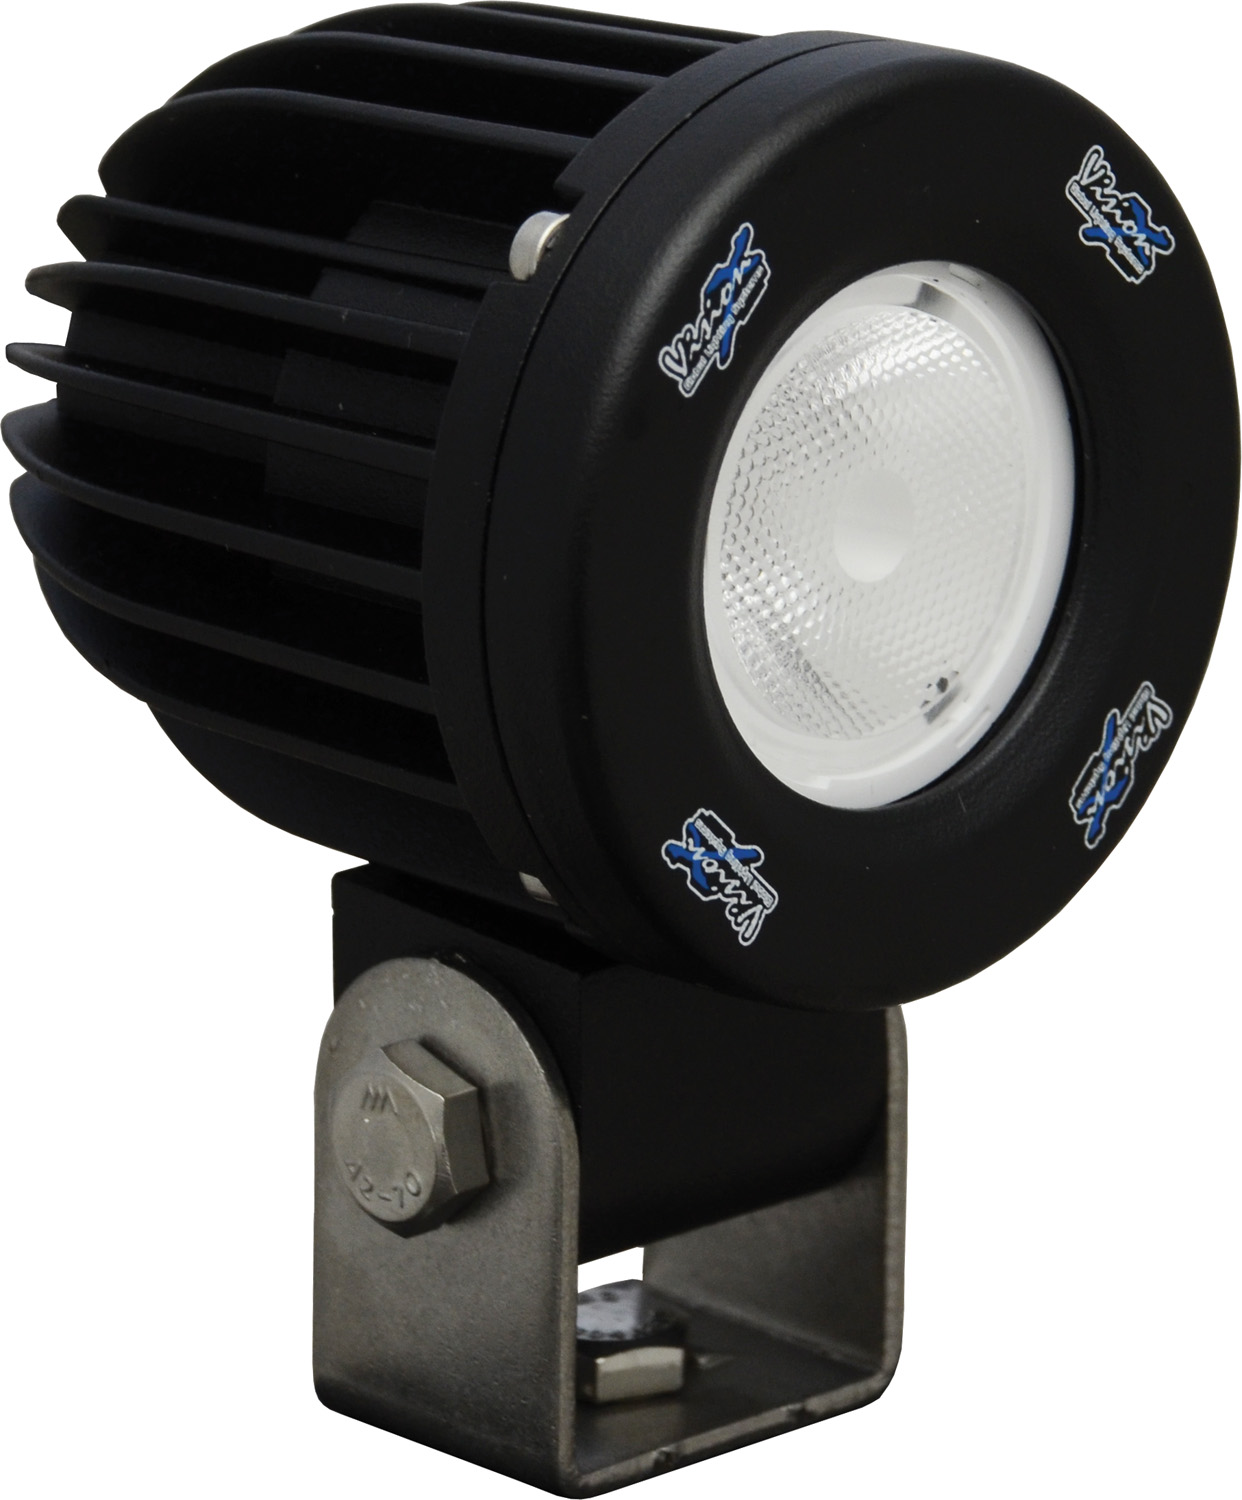 "2"" 10 WATT SOLSTICE SOLO PRIME LED 40 WIDE POD"